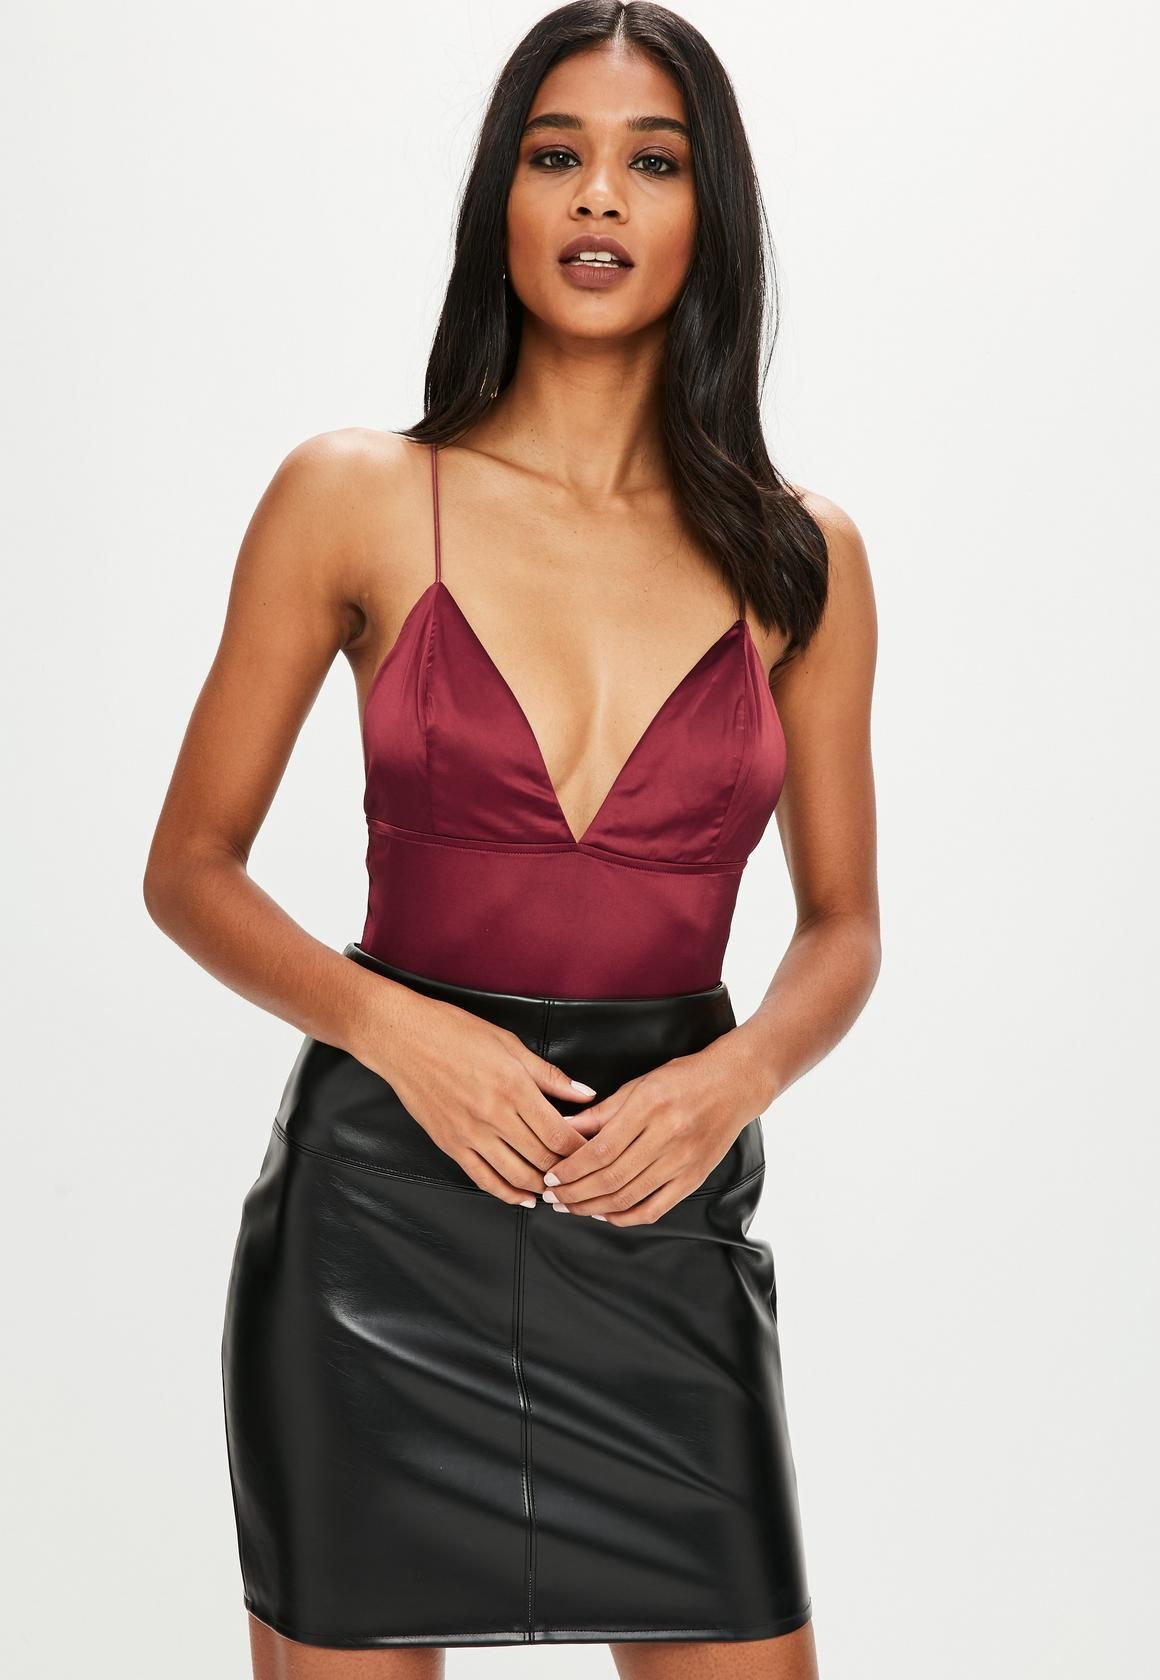 Missguided - Burgundy Plunge Satin Bodysuit  b7acd09a6